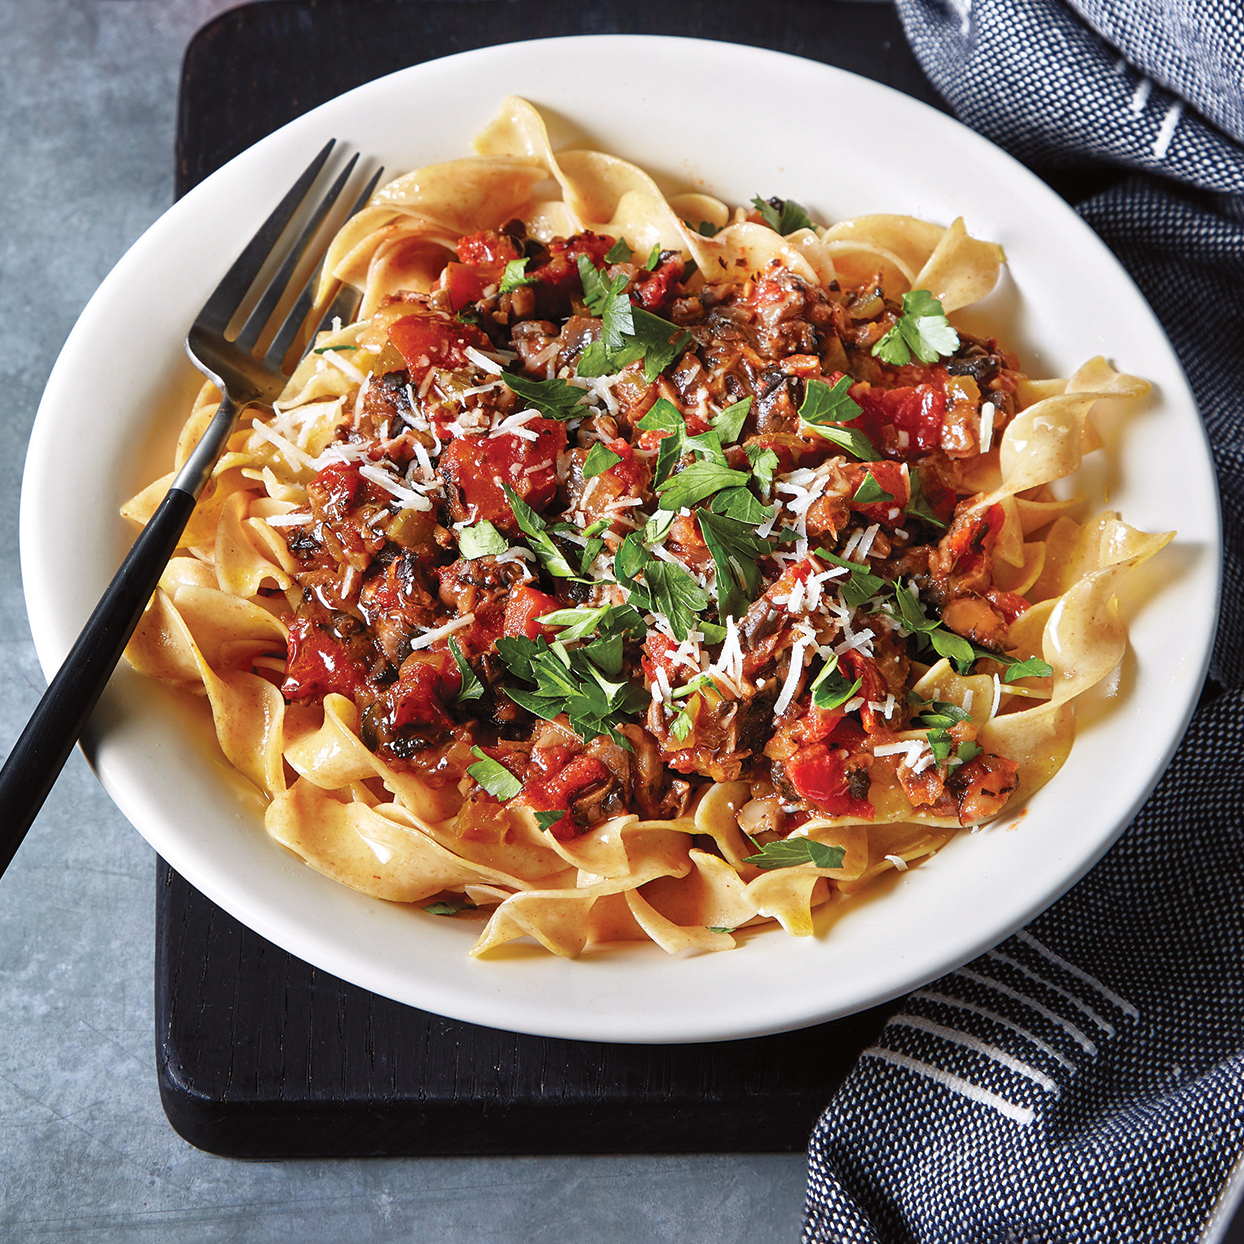 Slow-Cooker Mushroom Sauce Over Egg Noodles Trusted Brands